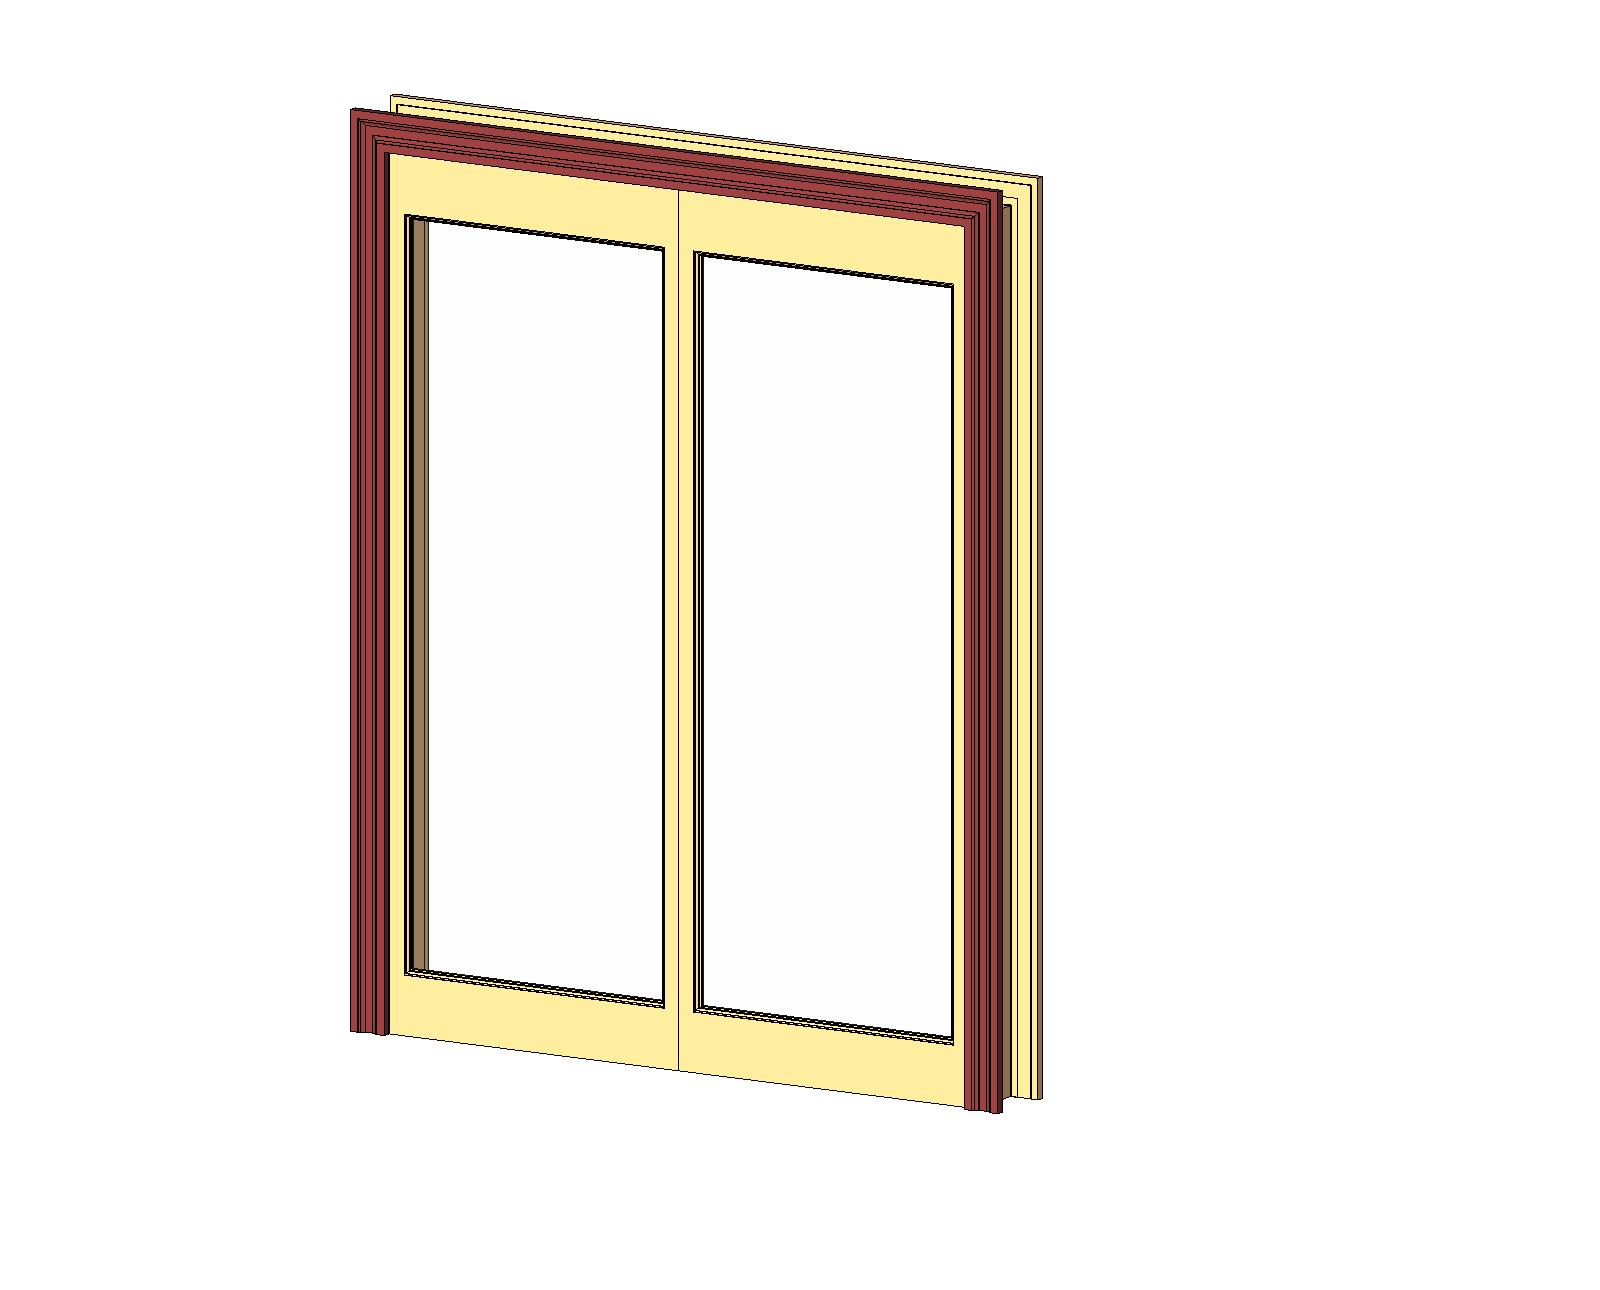 1290 #AC941F Doors And Hardware: Common Doors: Entry Double: 1 Panel Glazed  wallpaper Hardware For Double Entry Doors 46551600